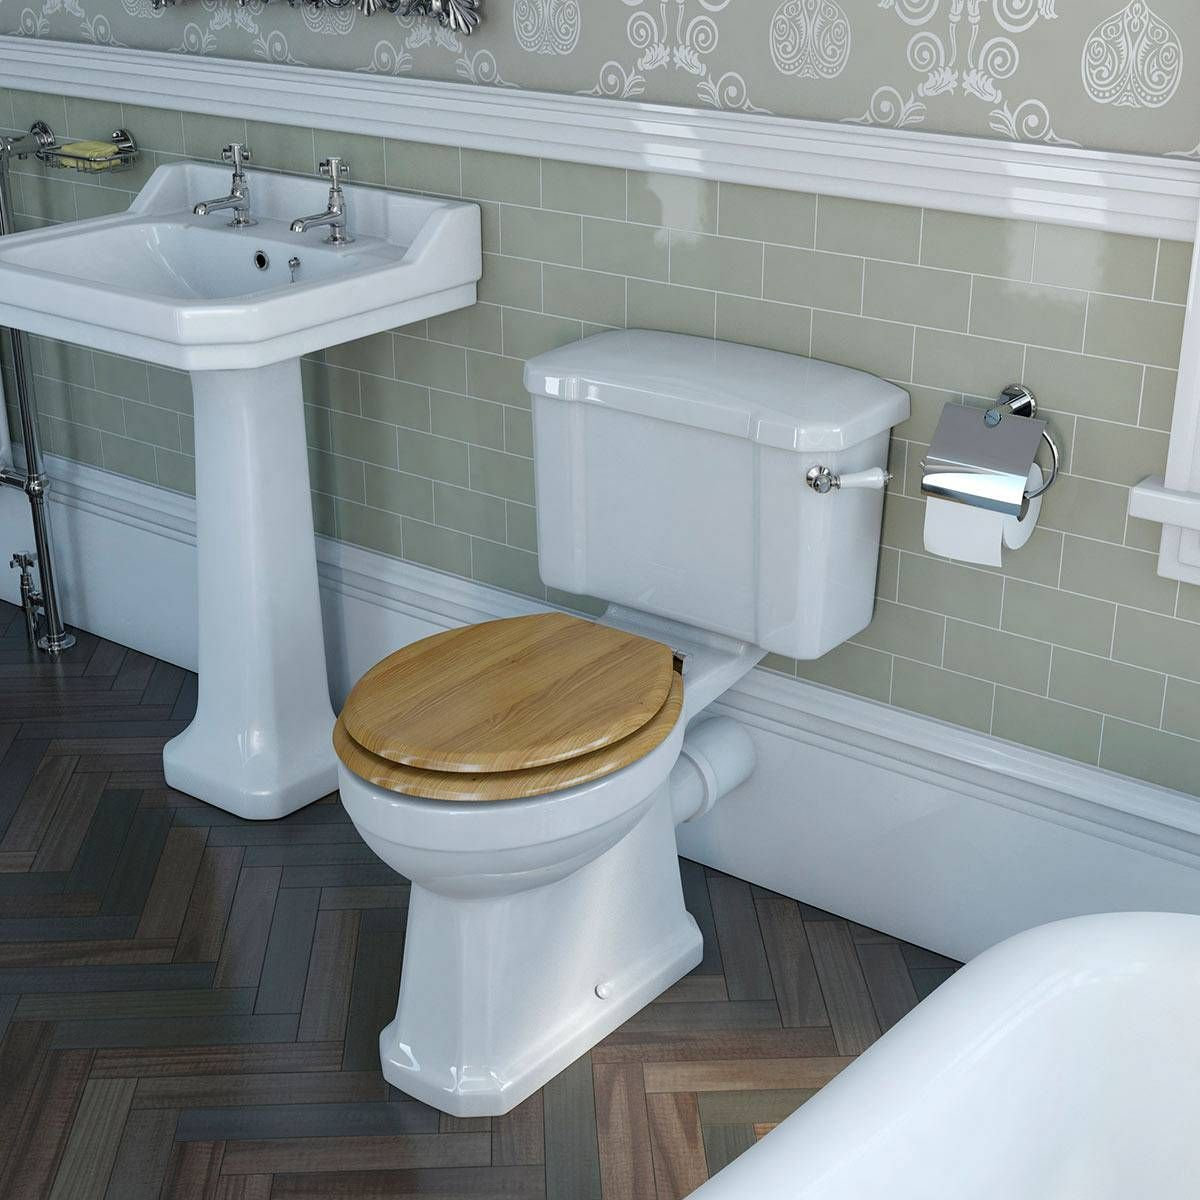 Classic Bathroom Suites The Camberley Bathroom Suite Range Is A Real Design Classic